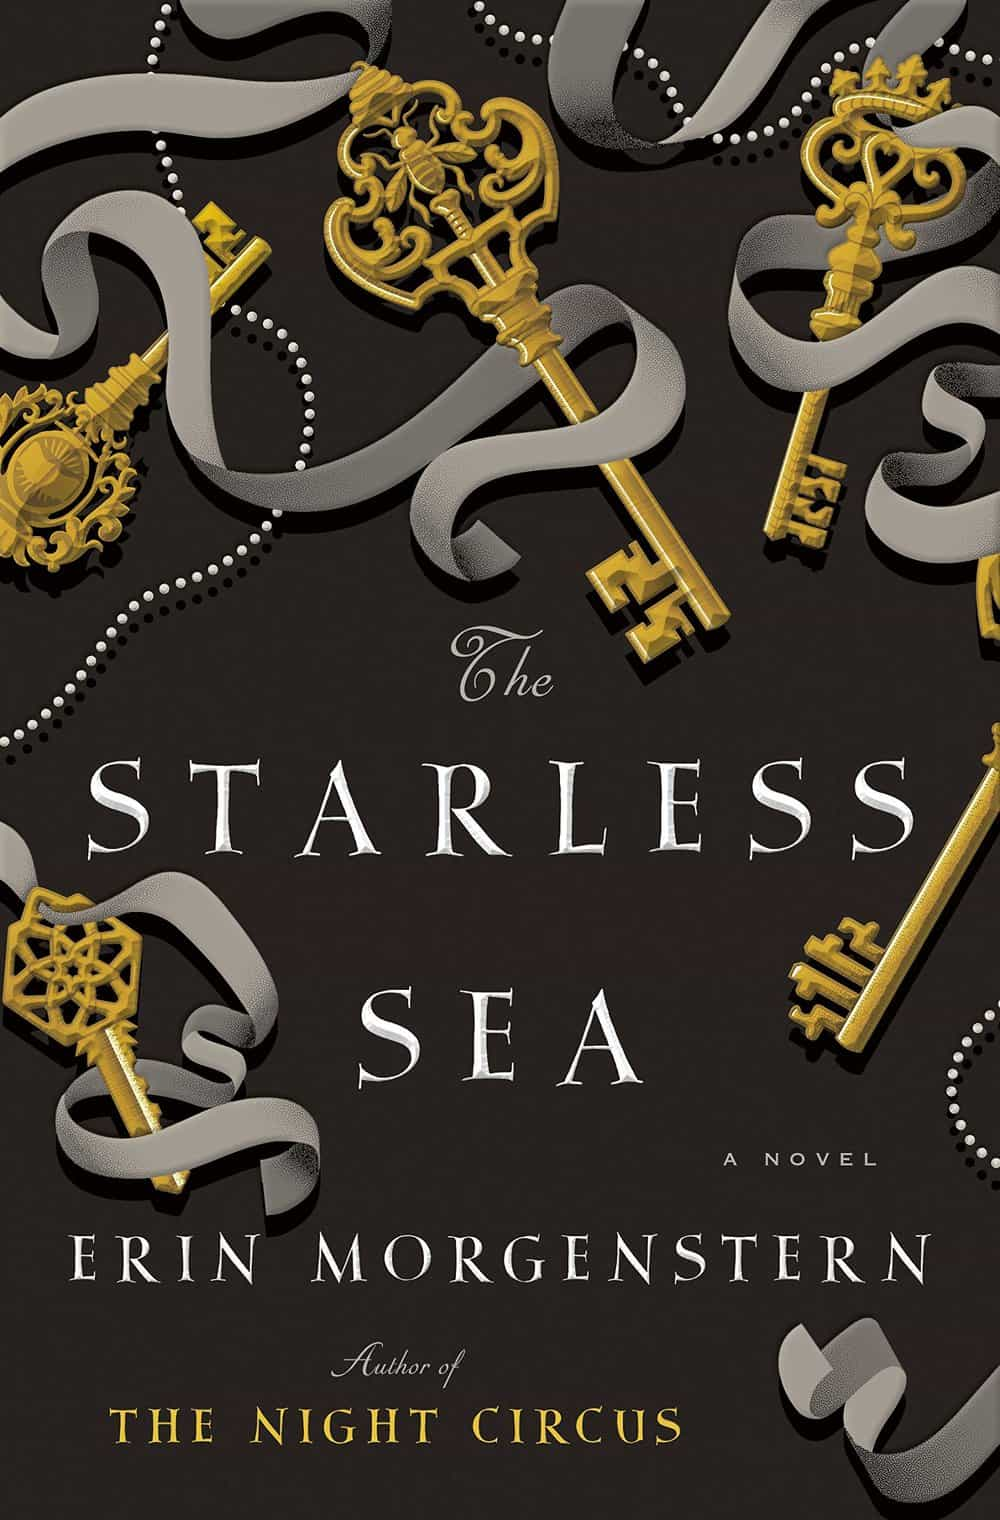 Standalone Sci-Fi and Fantasy Novels - The Starless Sea by Erin Morgenstern